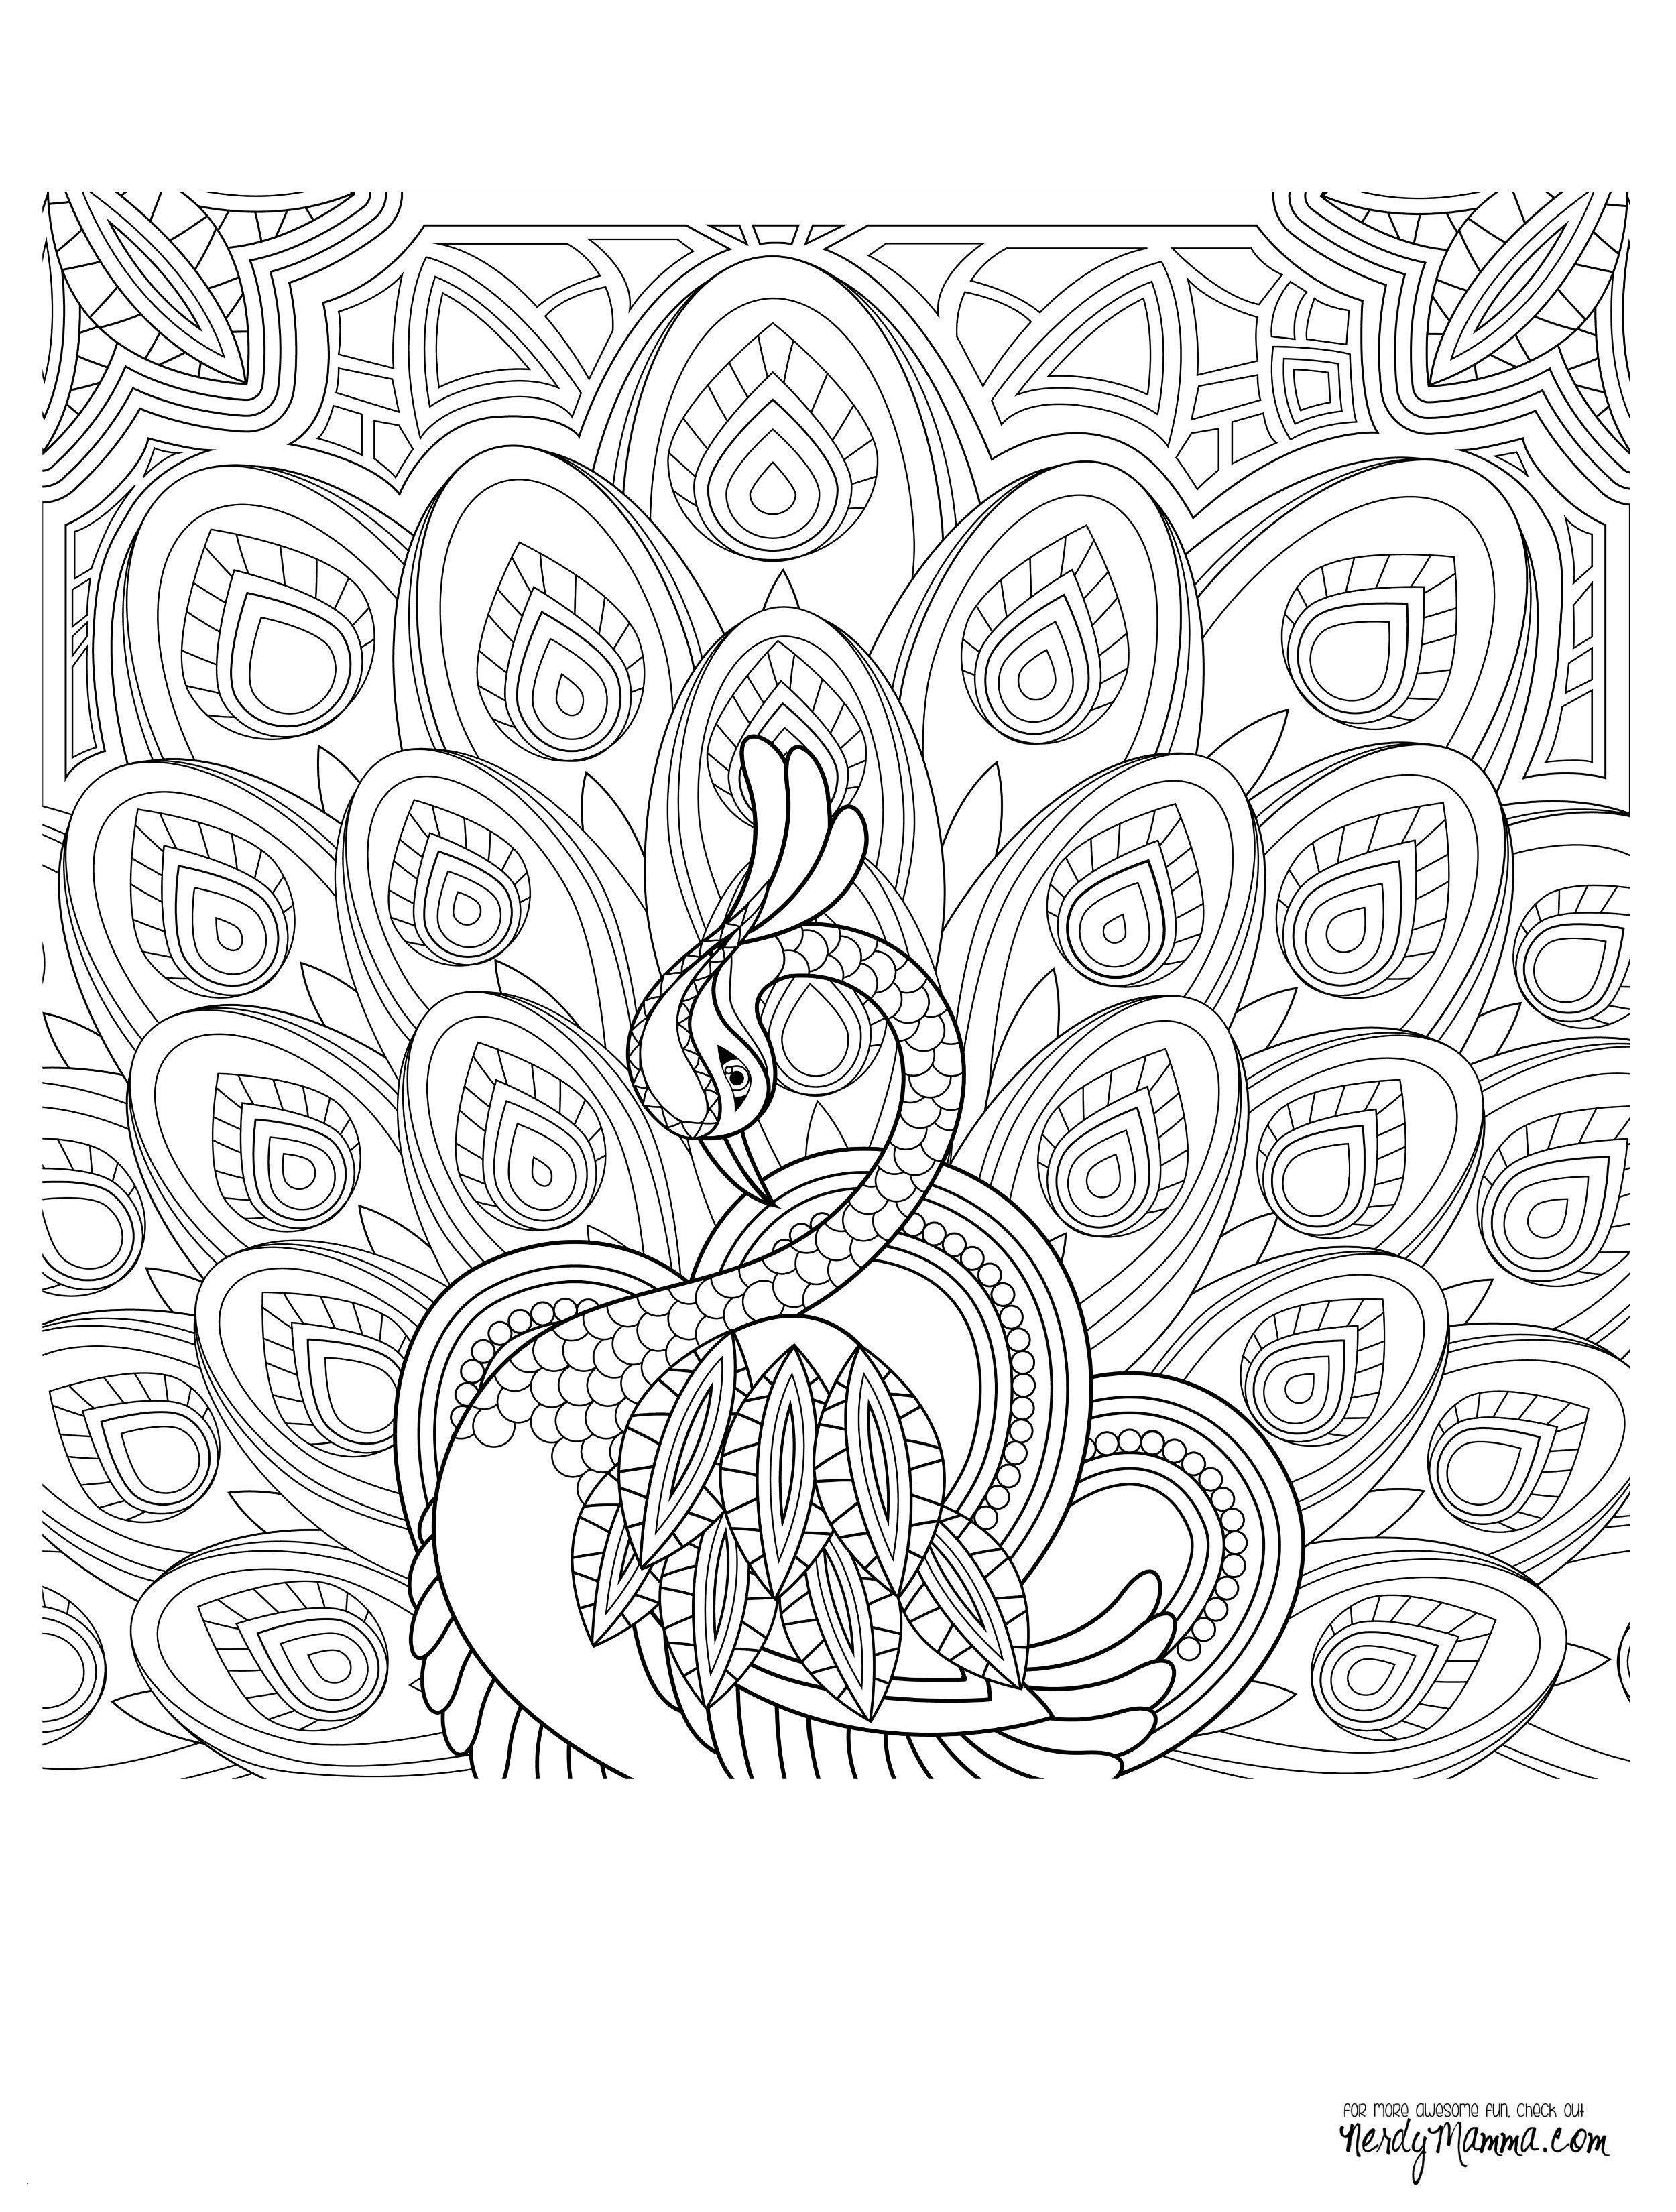 fun coloring pages Download-Fun Coloring Pages for Kids Coloring Pages for Kids New Coloring Printables 0d – Fun Time 16-b